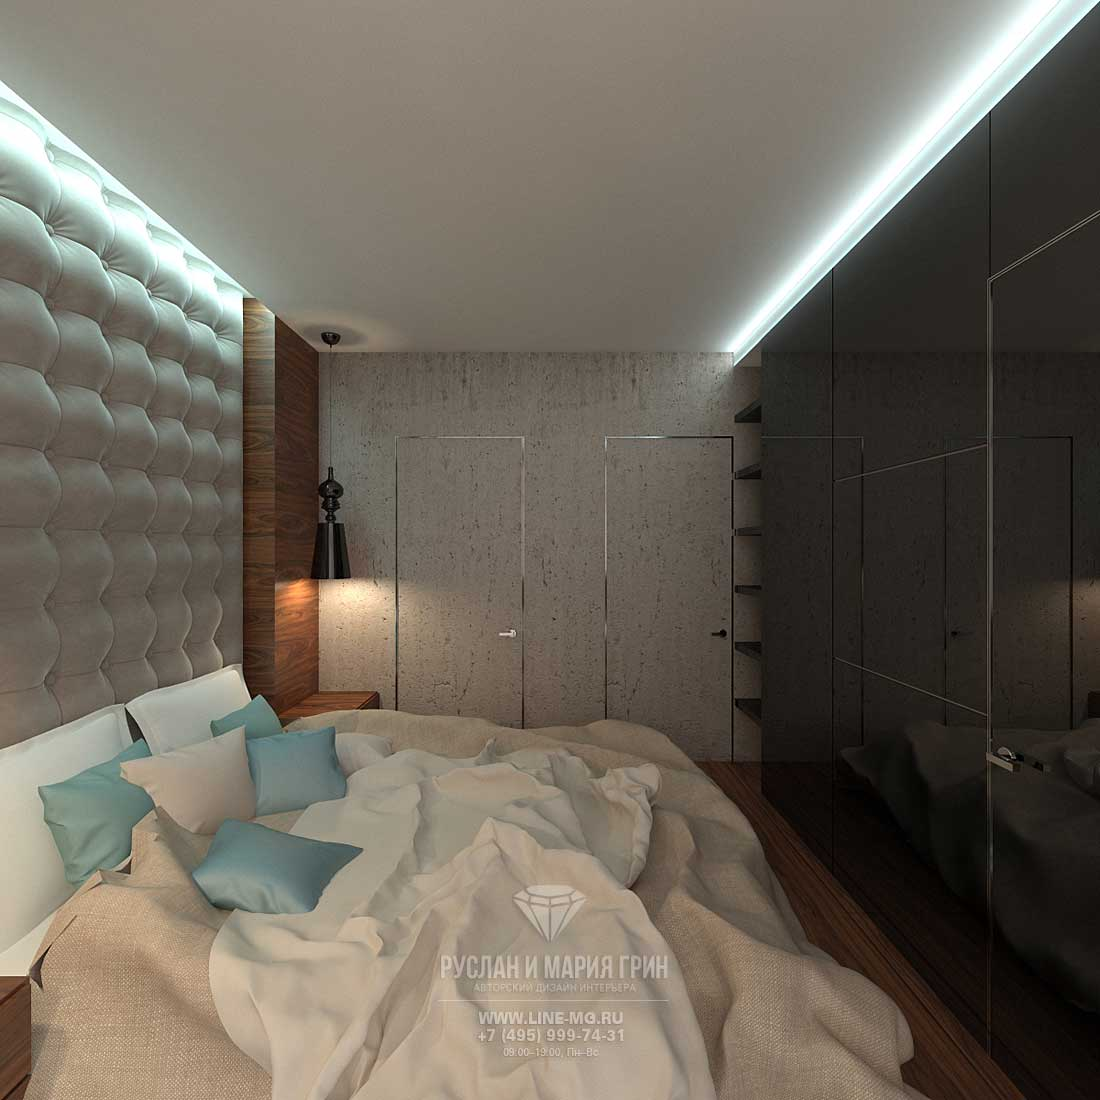 Bedroom design in an apartment for a young man